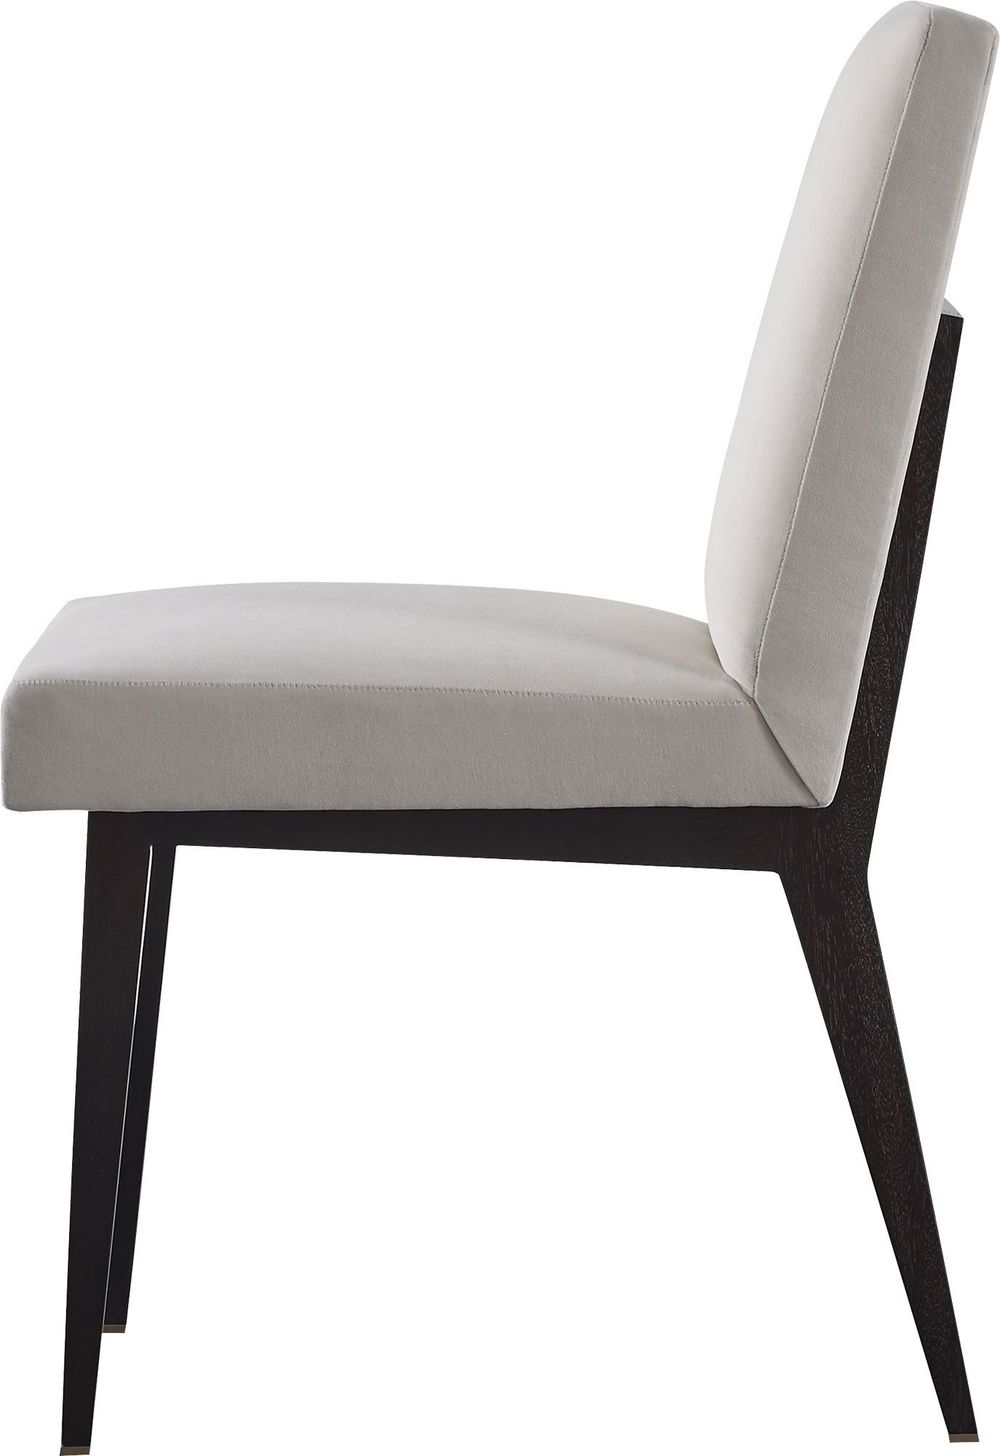 Baker Furniture - Wedge Dining Chair